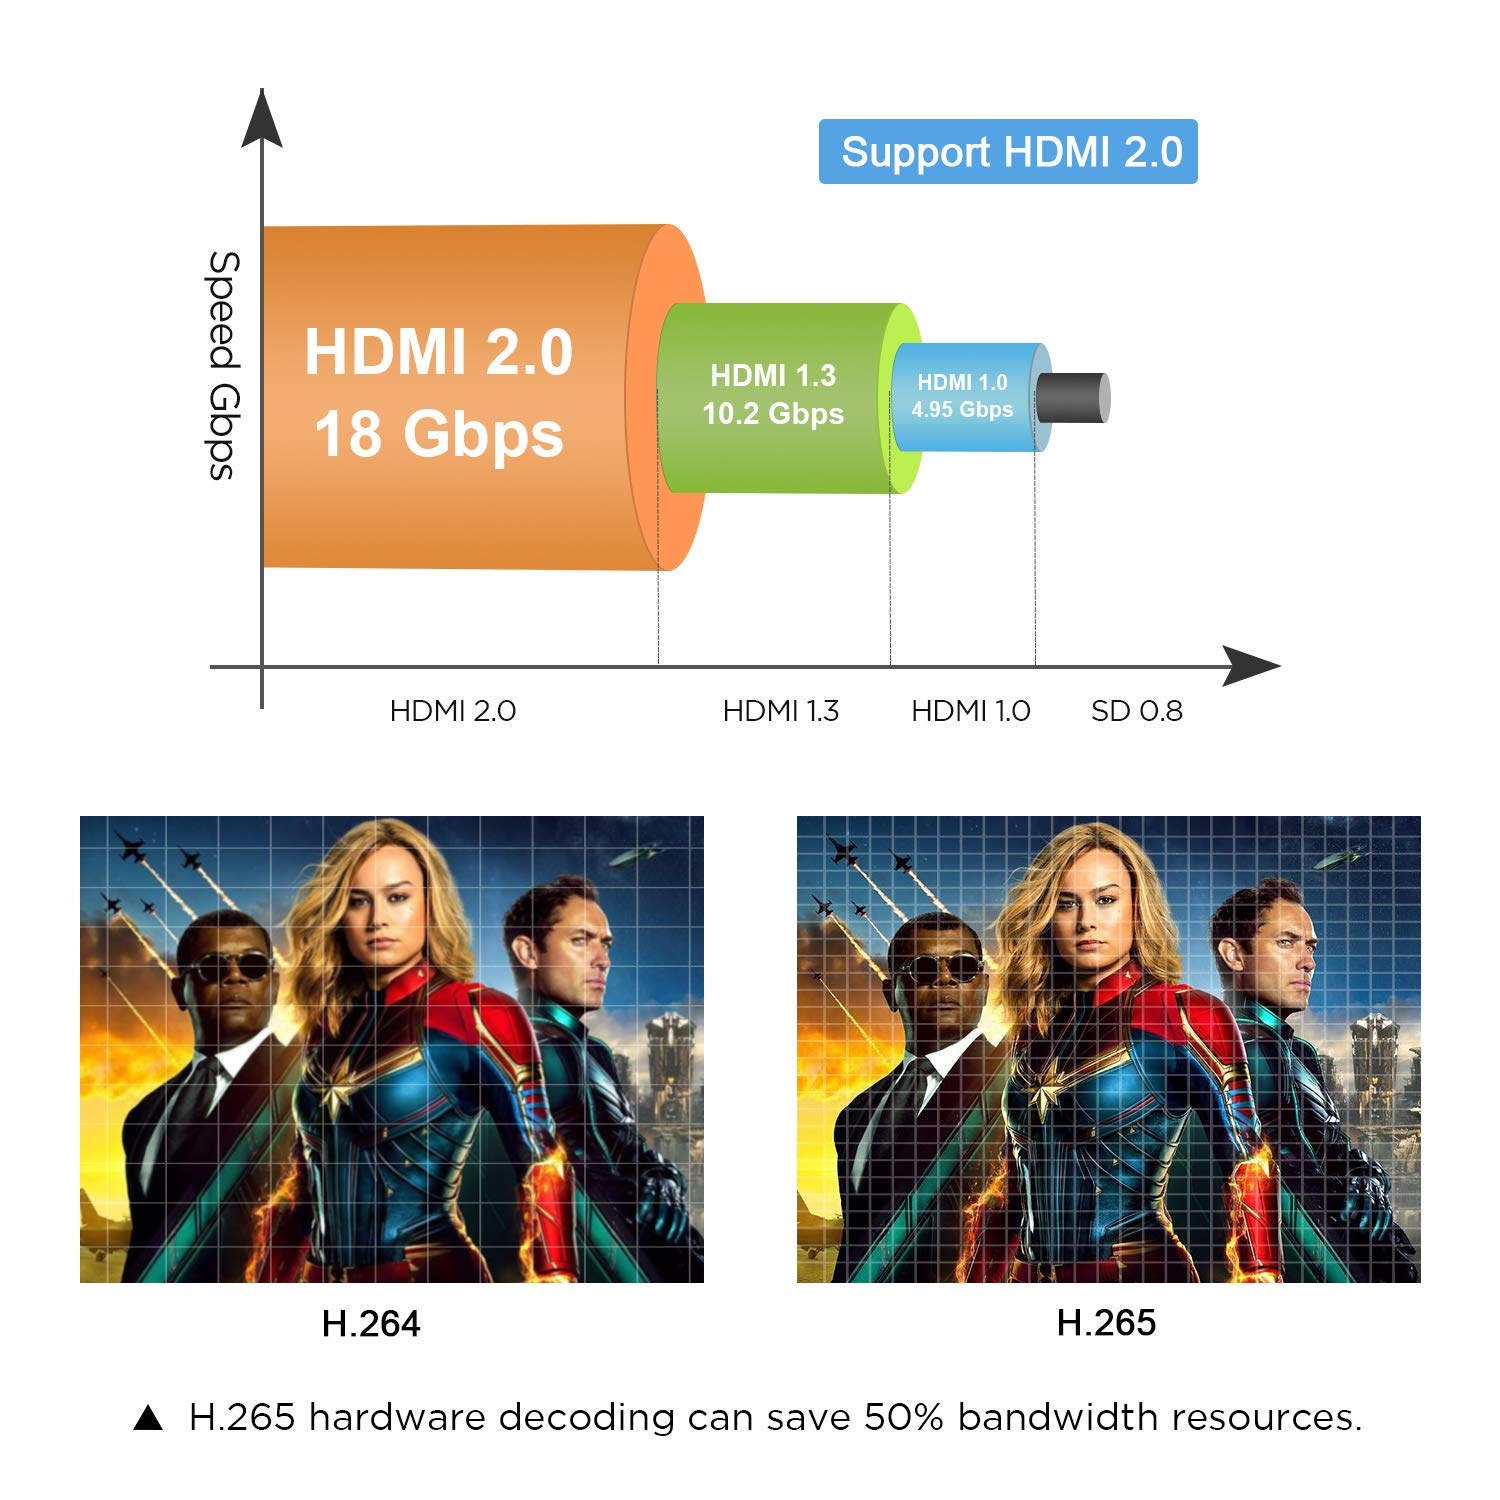 Android TV Box Globmall X1 Android 6.0 TV Box Marshmallow OS with Bluetooth 4.0 1GB RAM 8GB ROM Smart Tv Box S905X Supporting 4K Full HD Android Box 2.4GHz WiFi